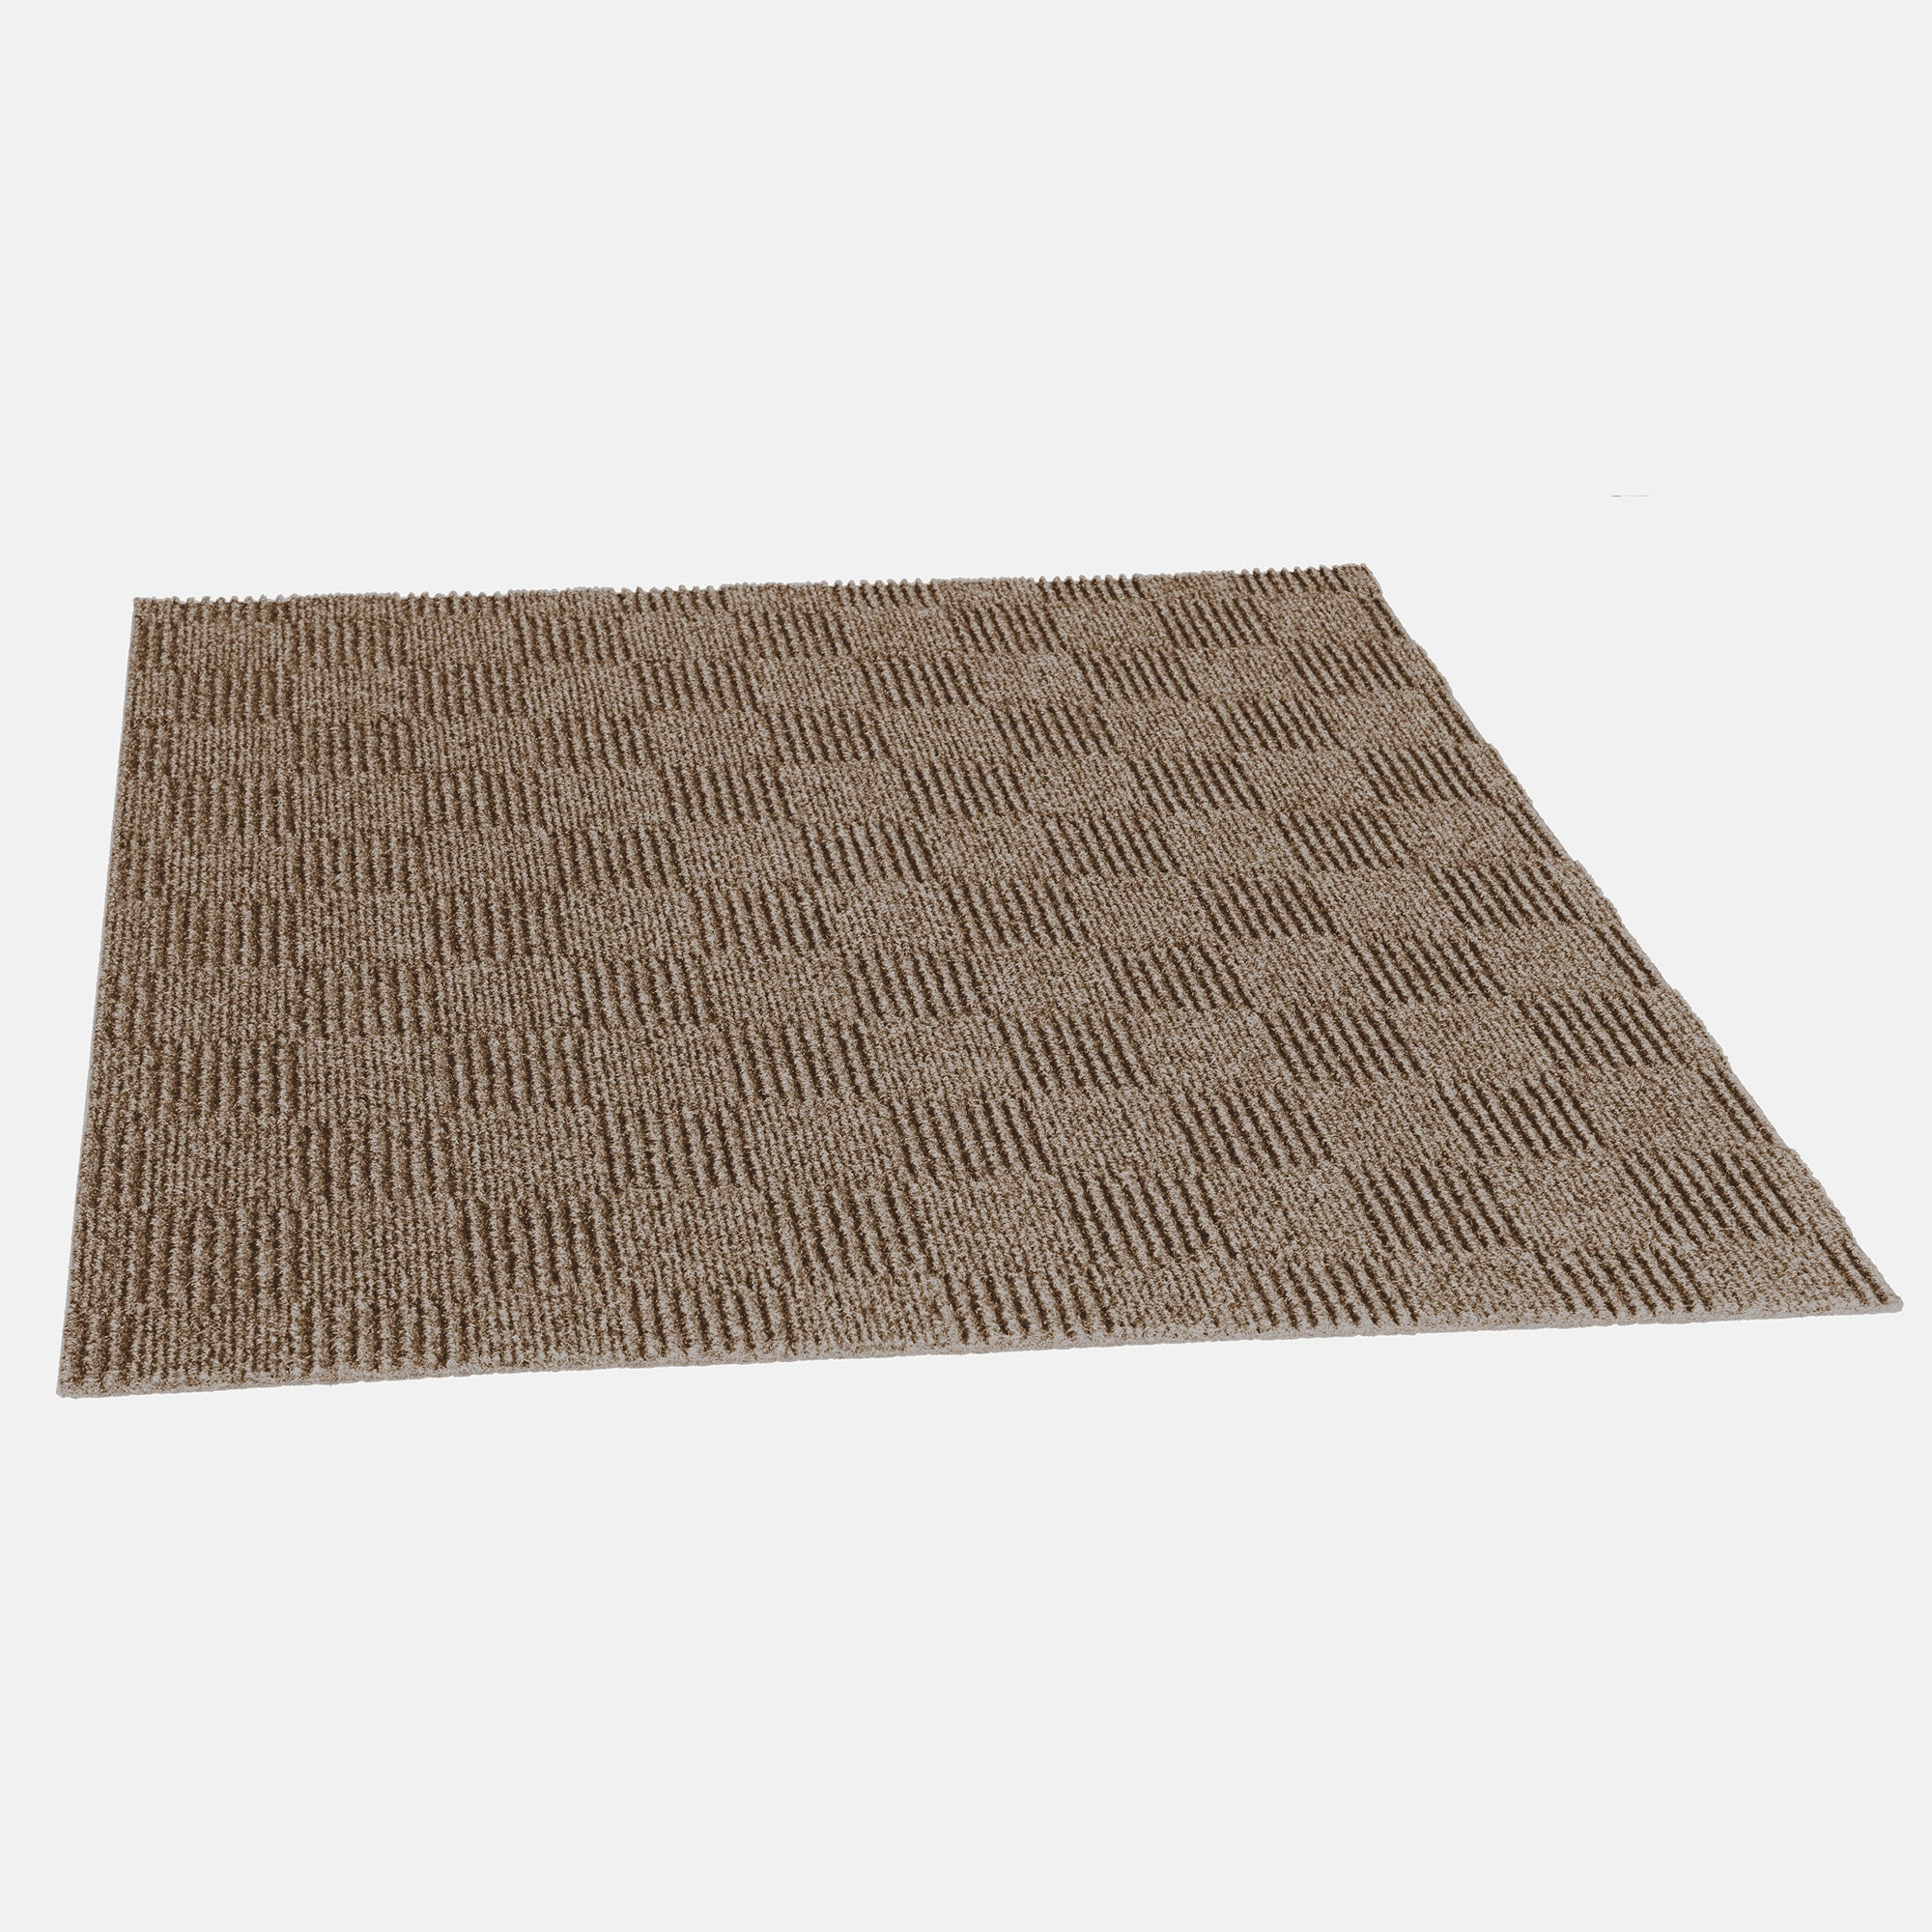 Prism 24'' X 24'' Premium Peel And Stick Carpet Tiles (Shadow)